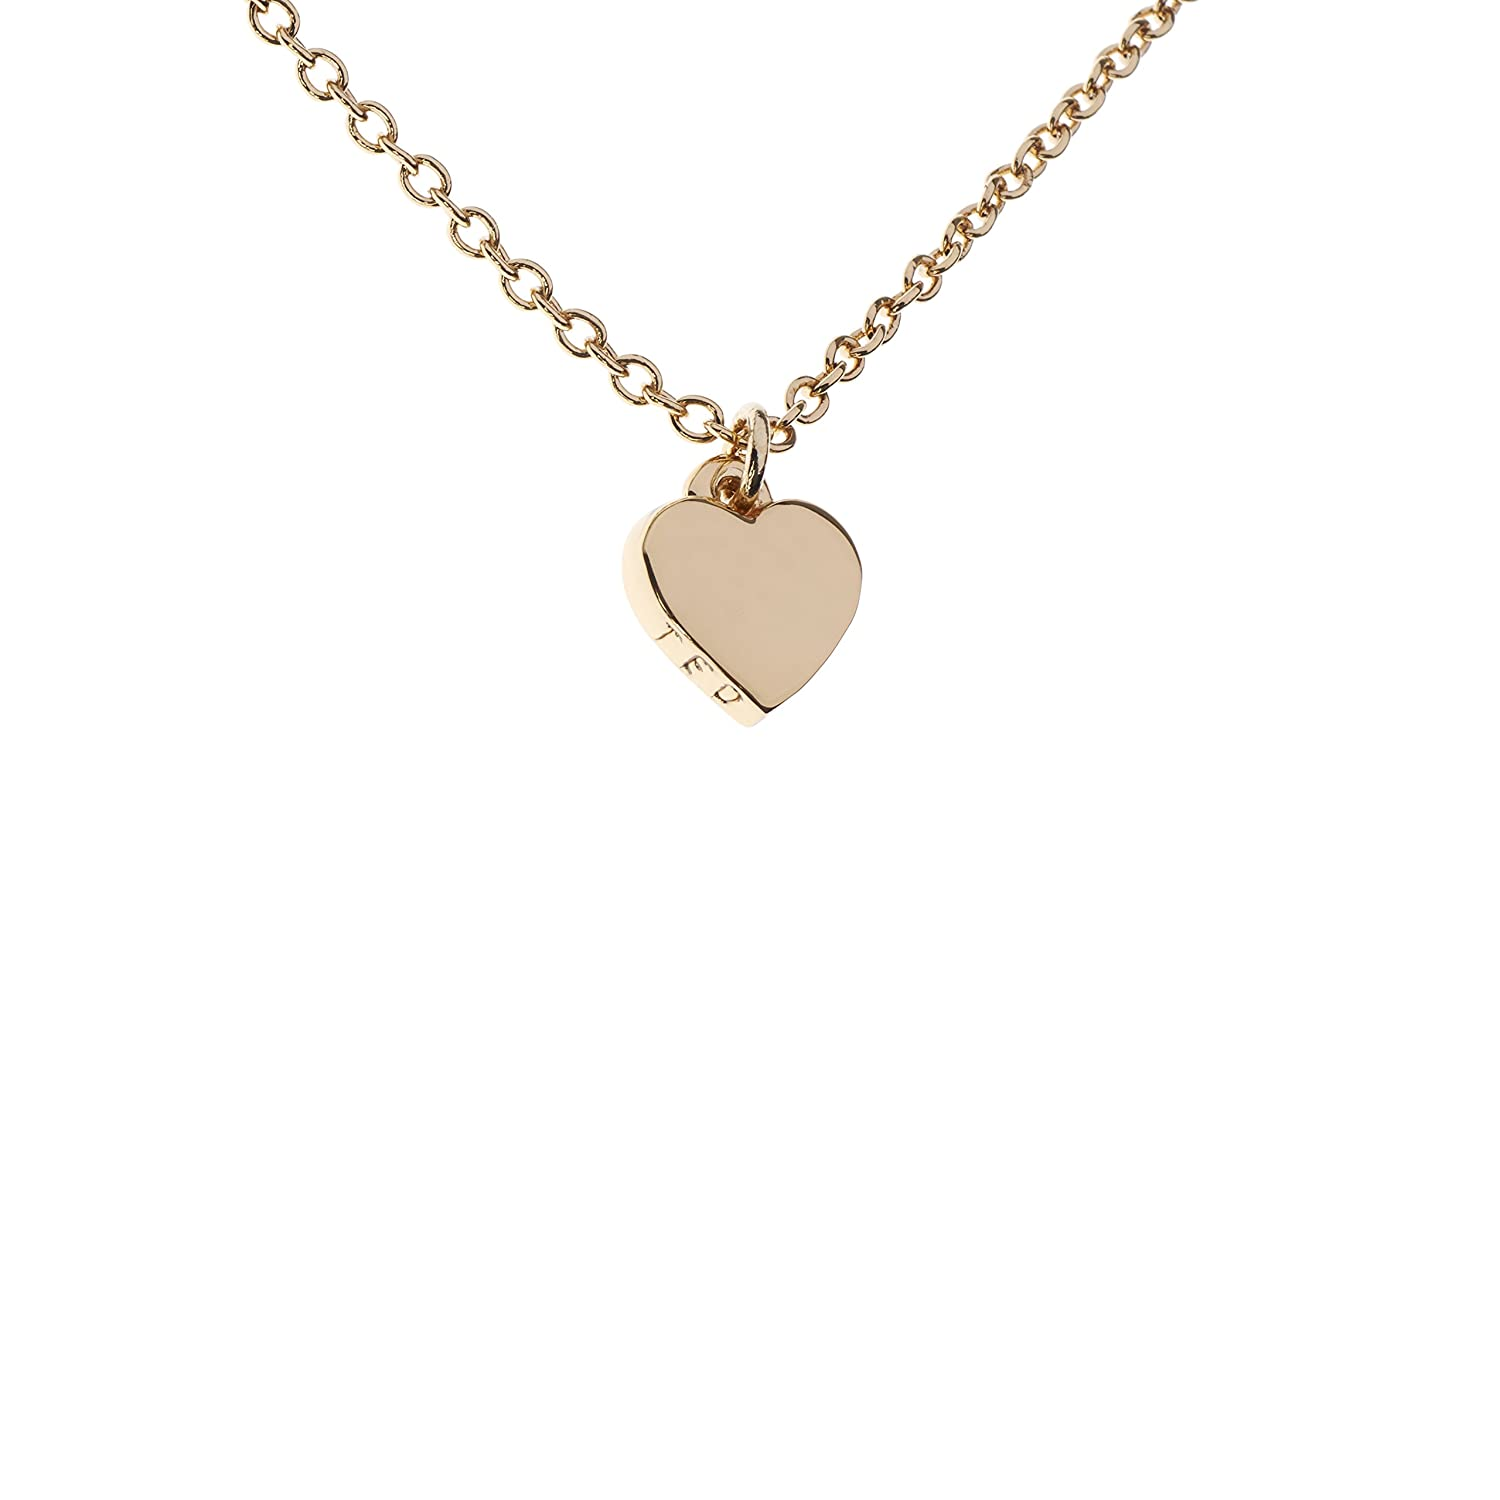 pool charm on by finn chain candice gold products neistat dainty heart necklace long mini